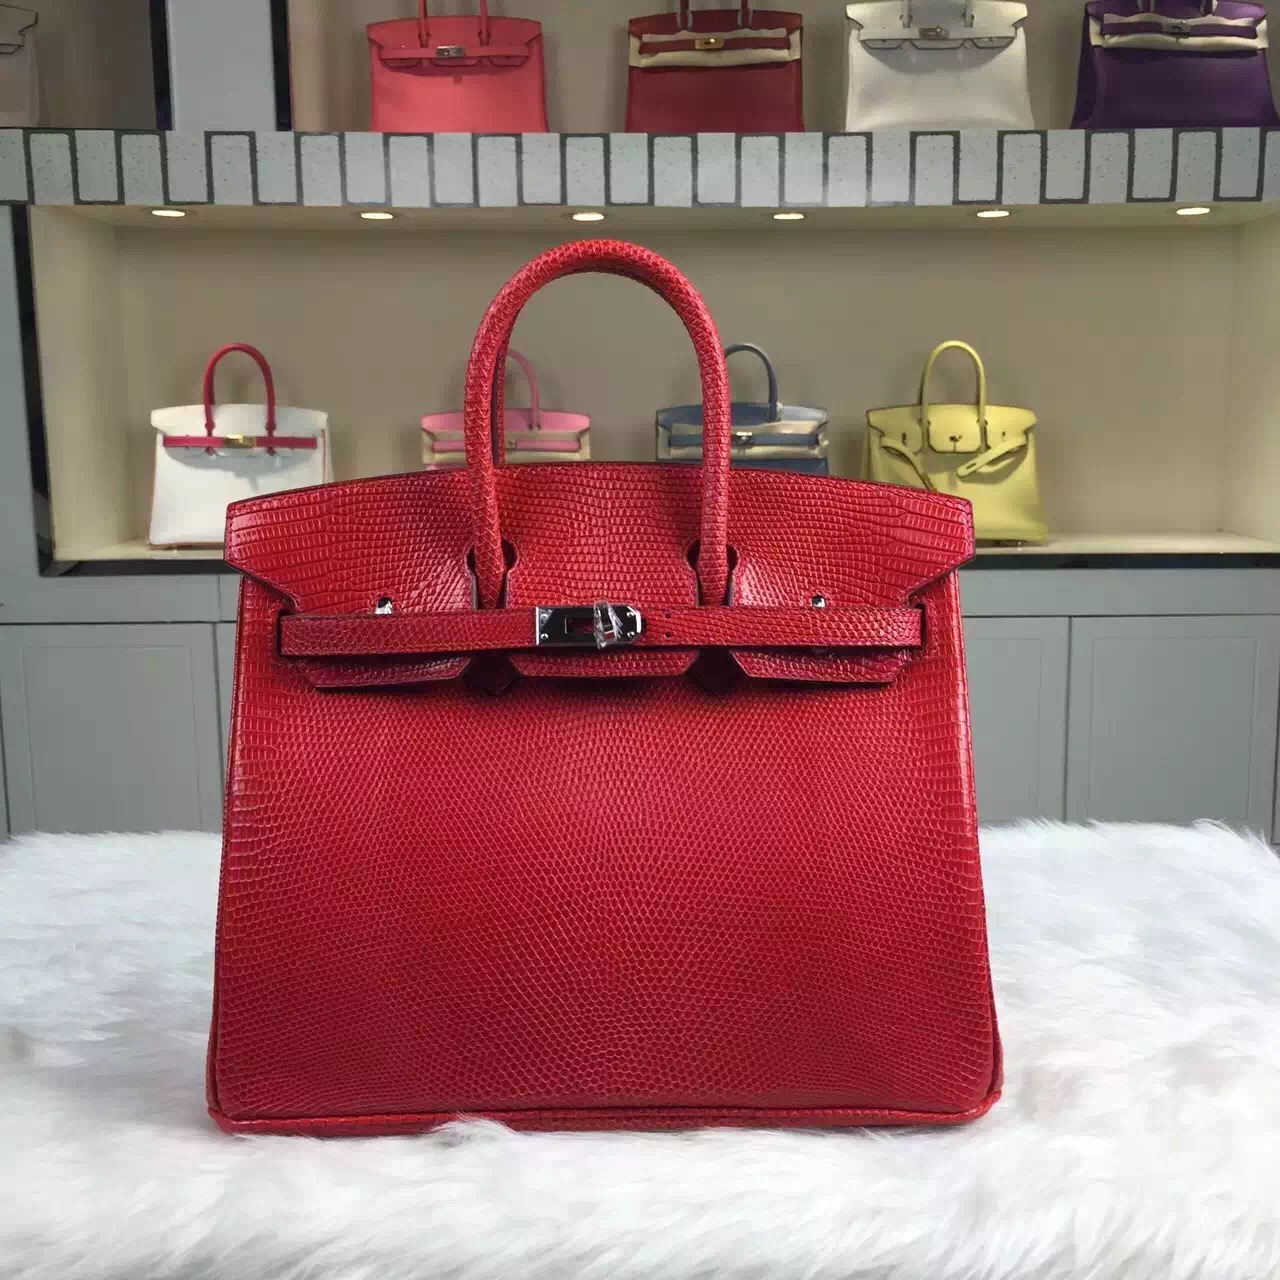 Fashion Hermes Q5 Rouge Casaque Shiny Lizard Leather Birkin Bag25cm